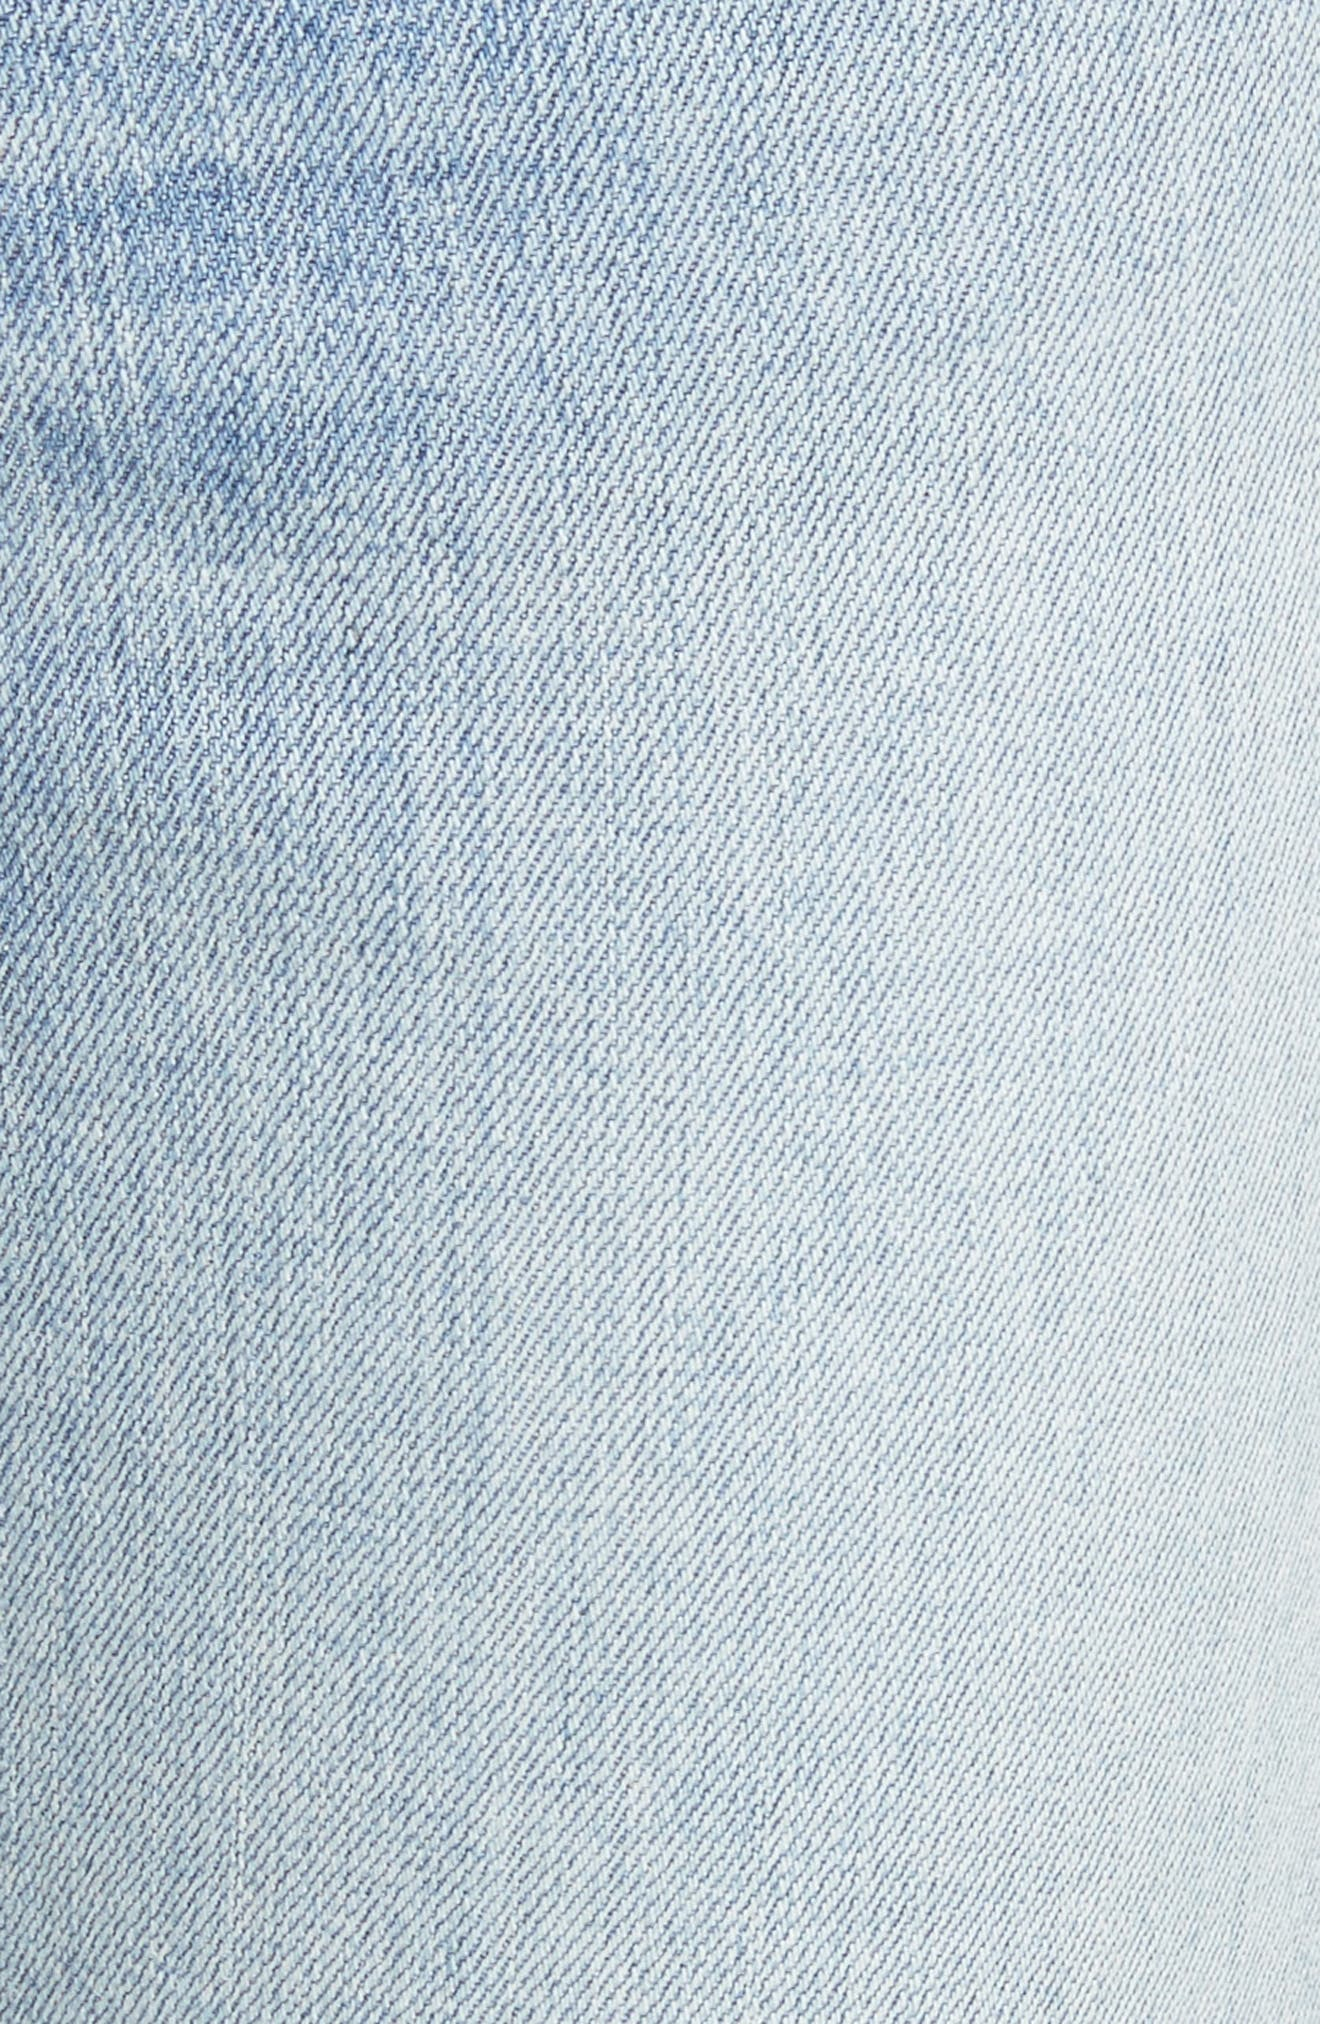 Alternate Image 5  - rag & bone/JEAN Cigarette Leg Jeans (Double Down)